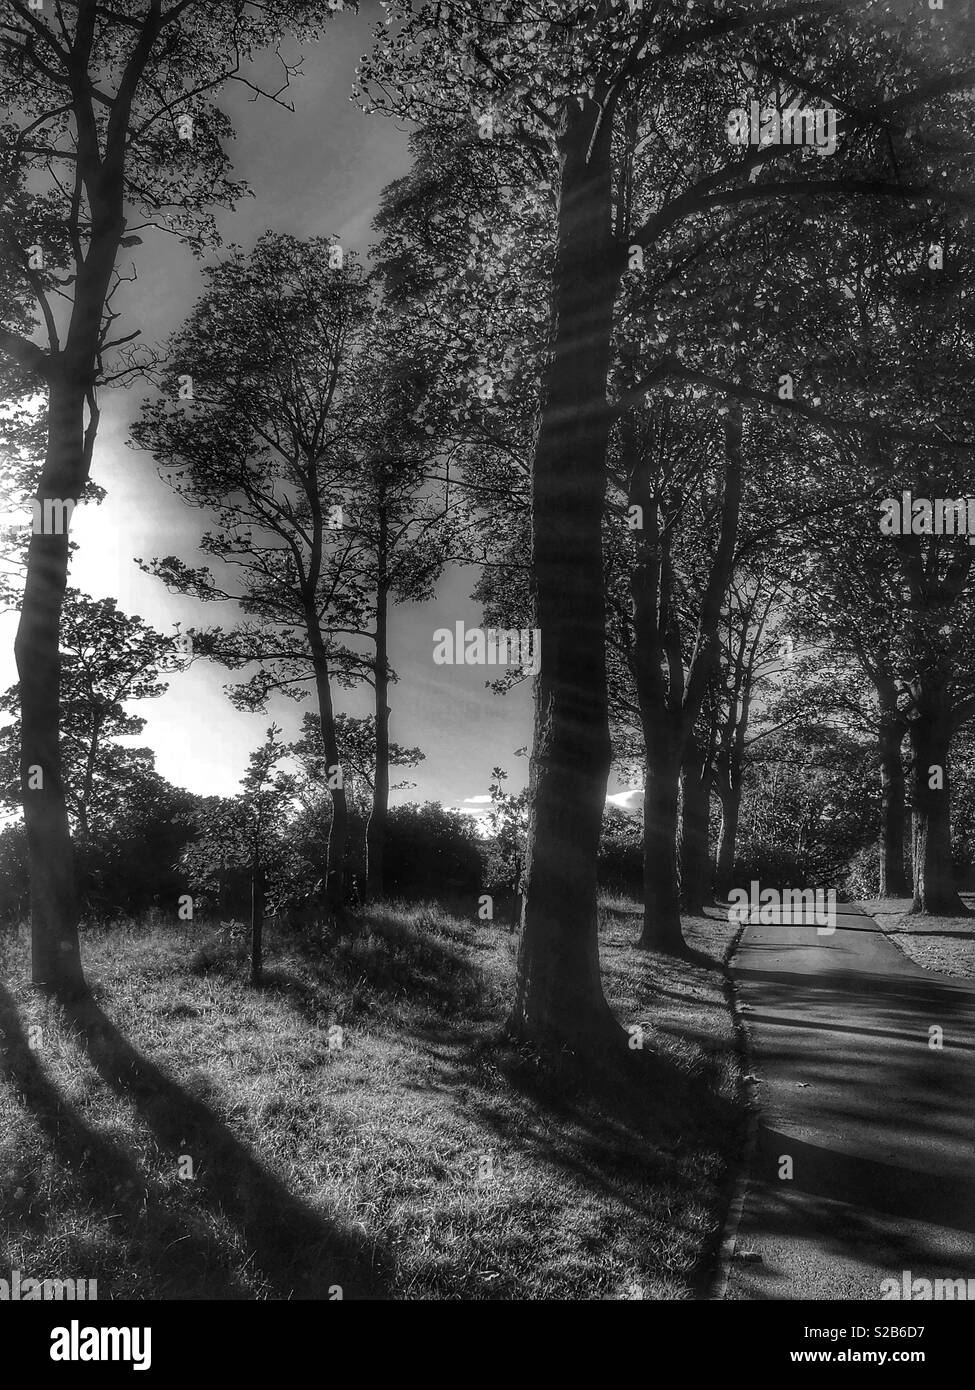 Trees in a park in England at autumn time, shot in black and white - Stock Image